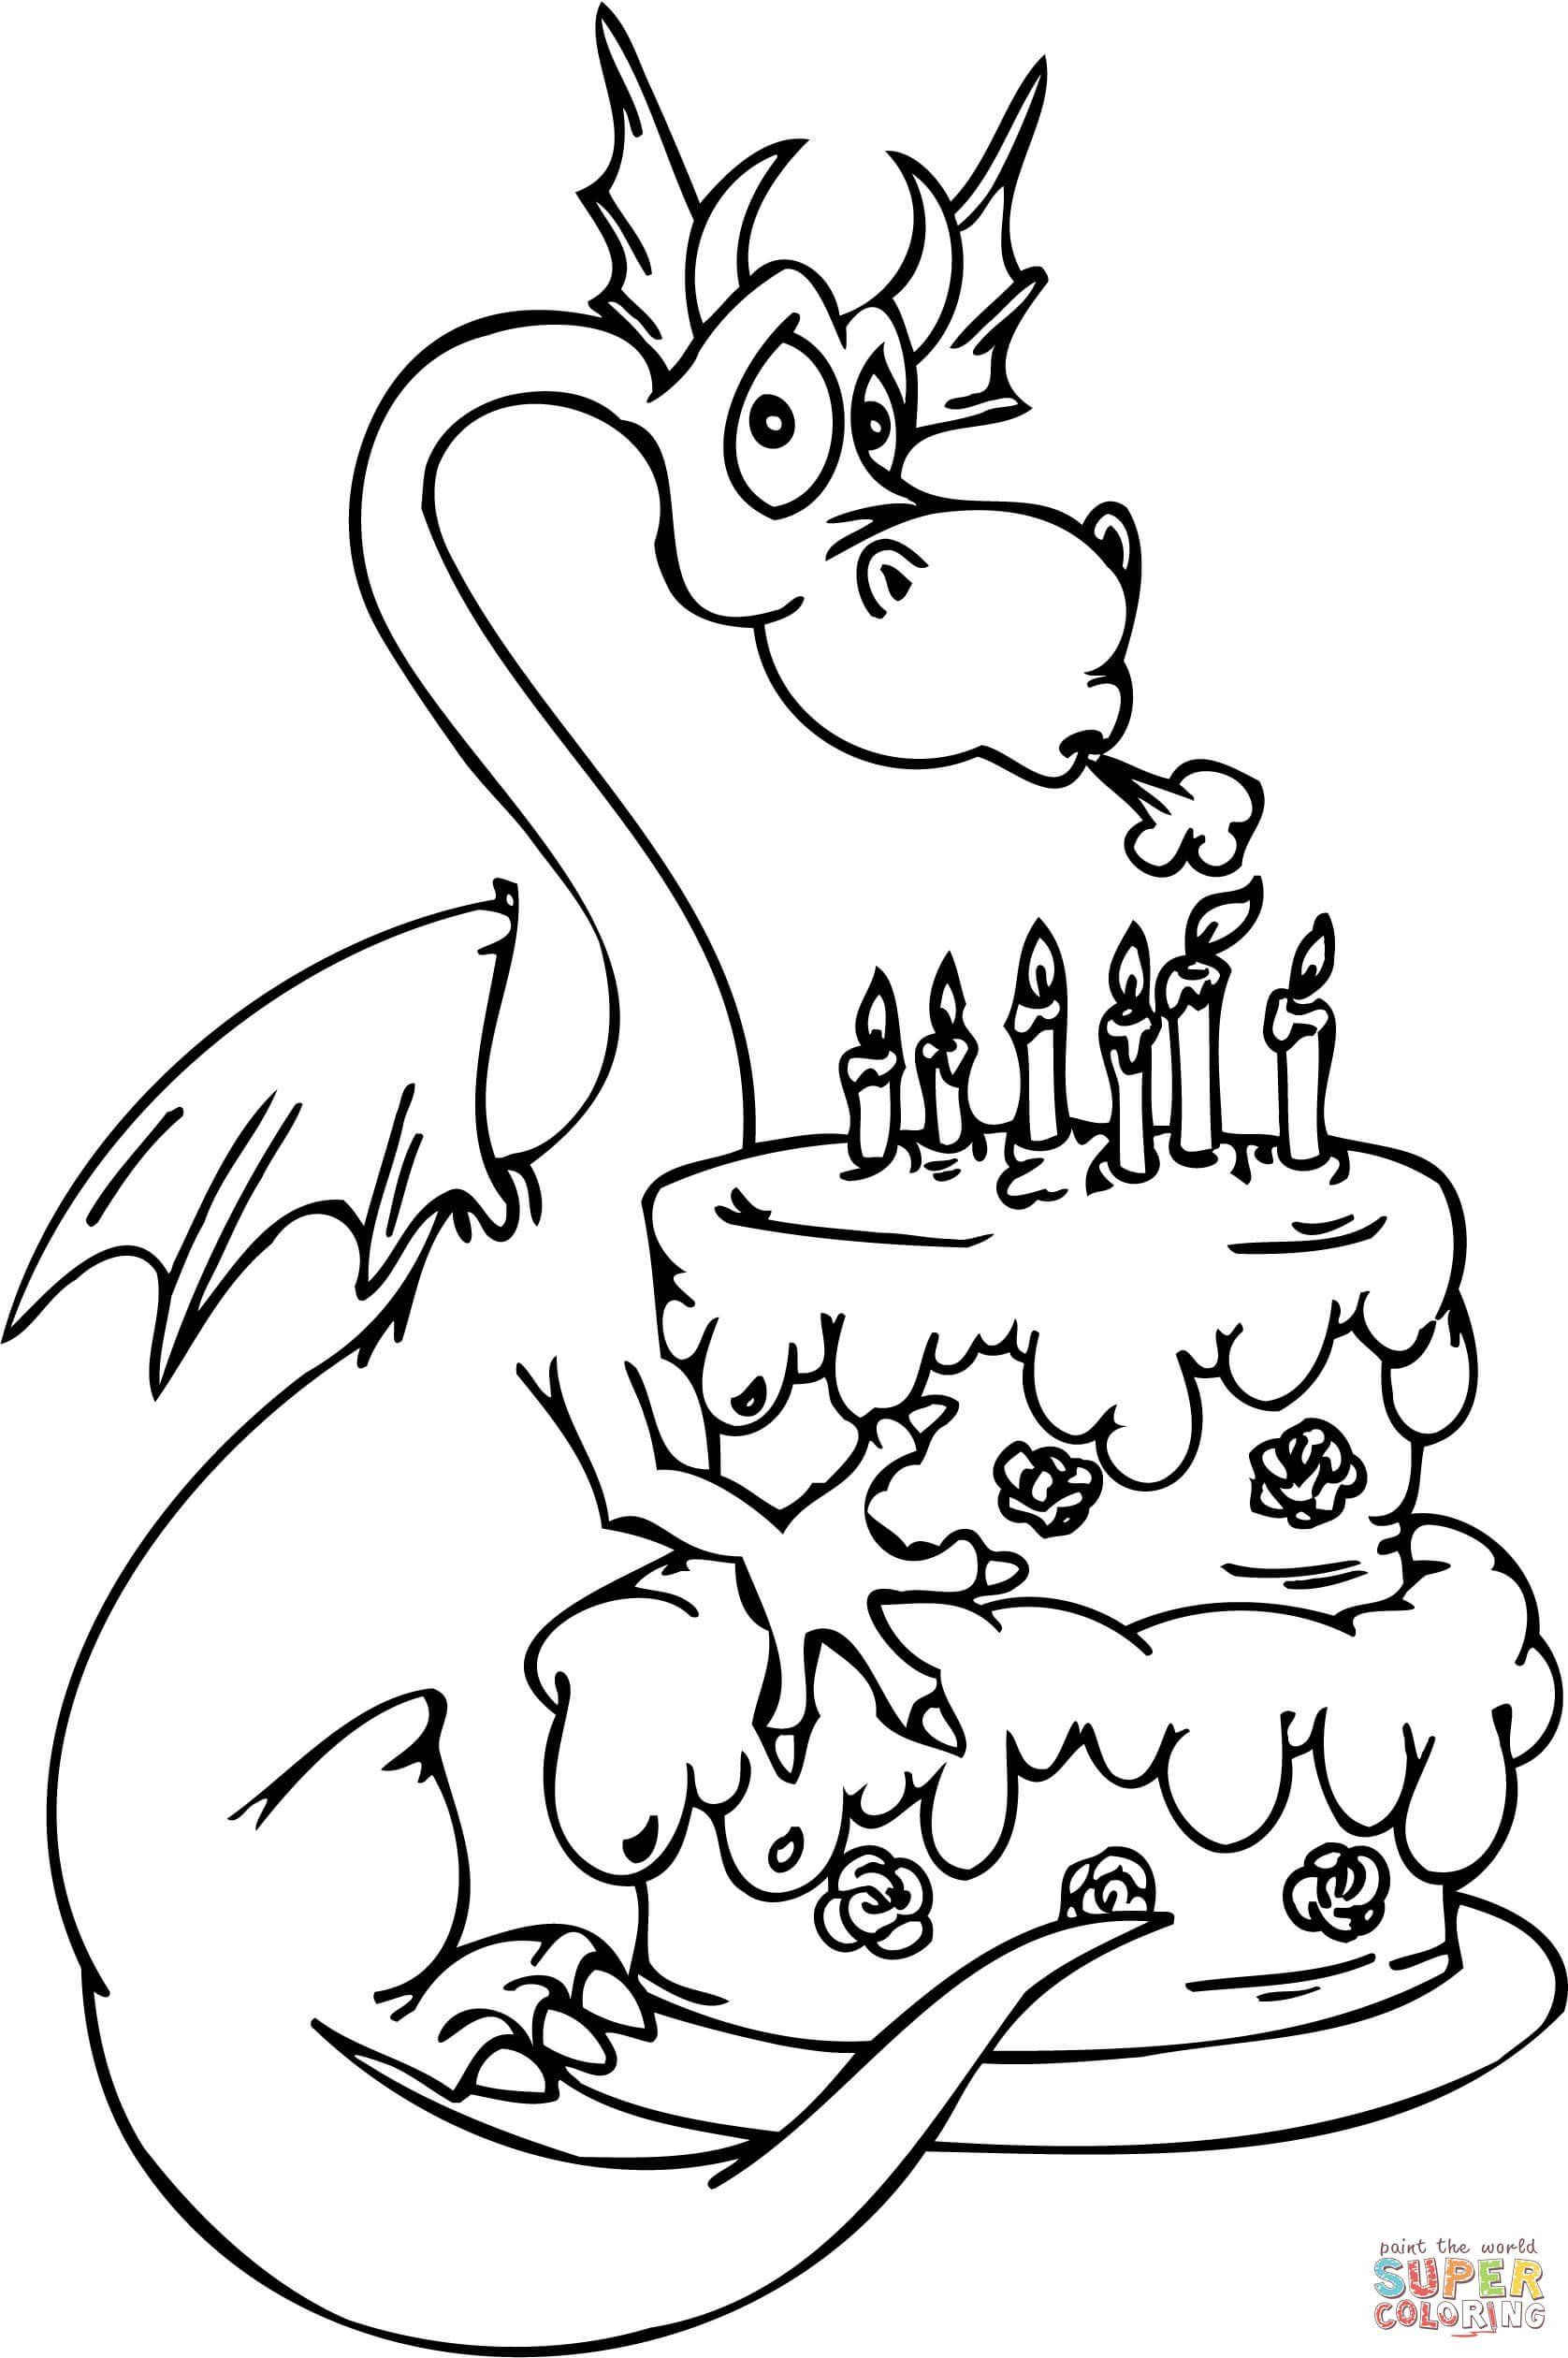 Free Printable Birthday Coloring Pages Coloring Pages Dragon With Happy Birthday C In 2020 Happy Birthday Coloring Pages Birthday Coloring Pages Cupcake Coloring Pages